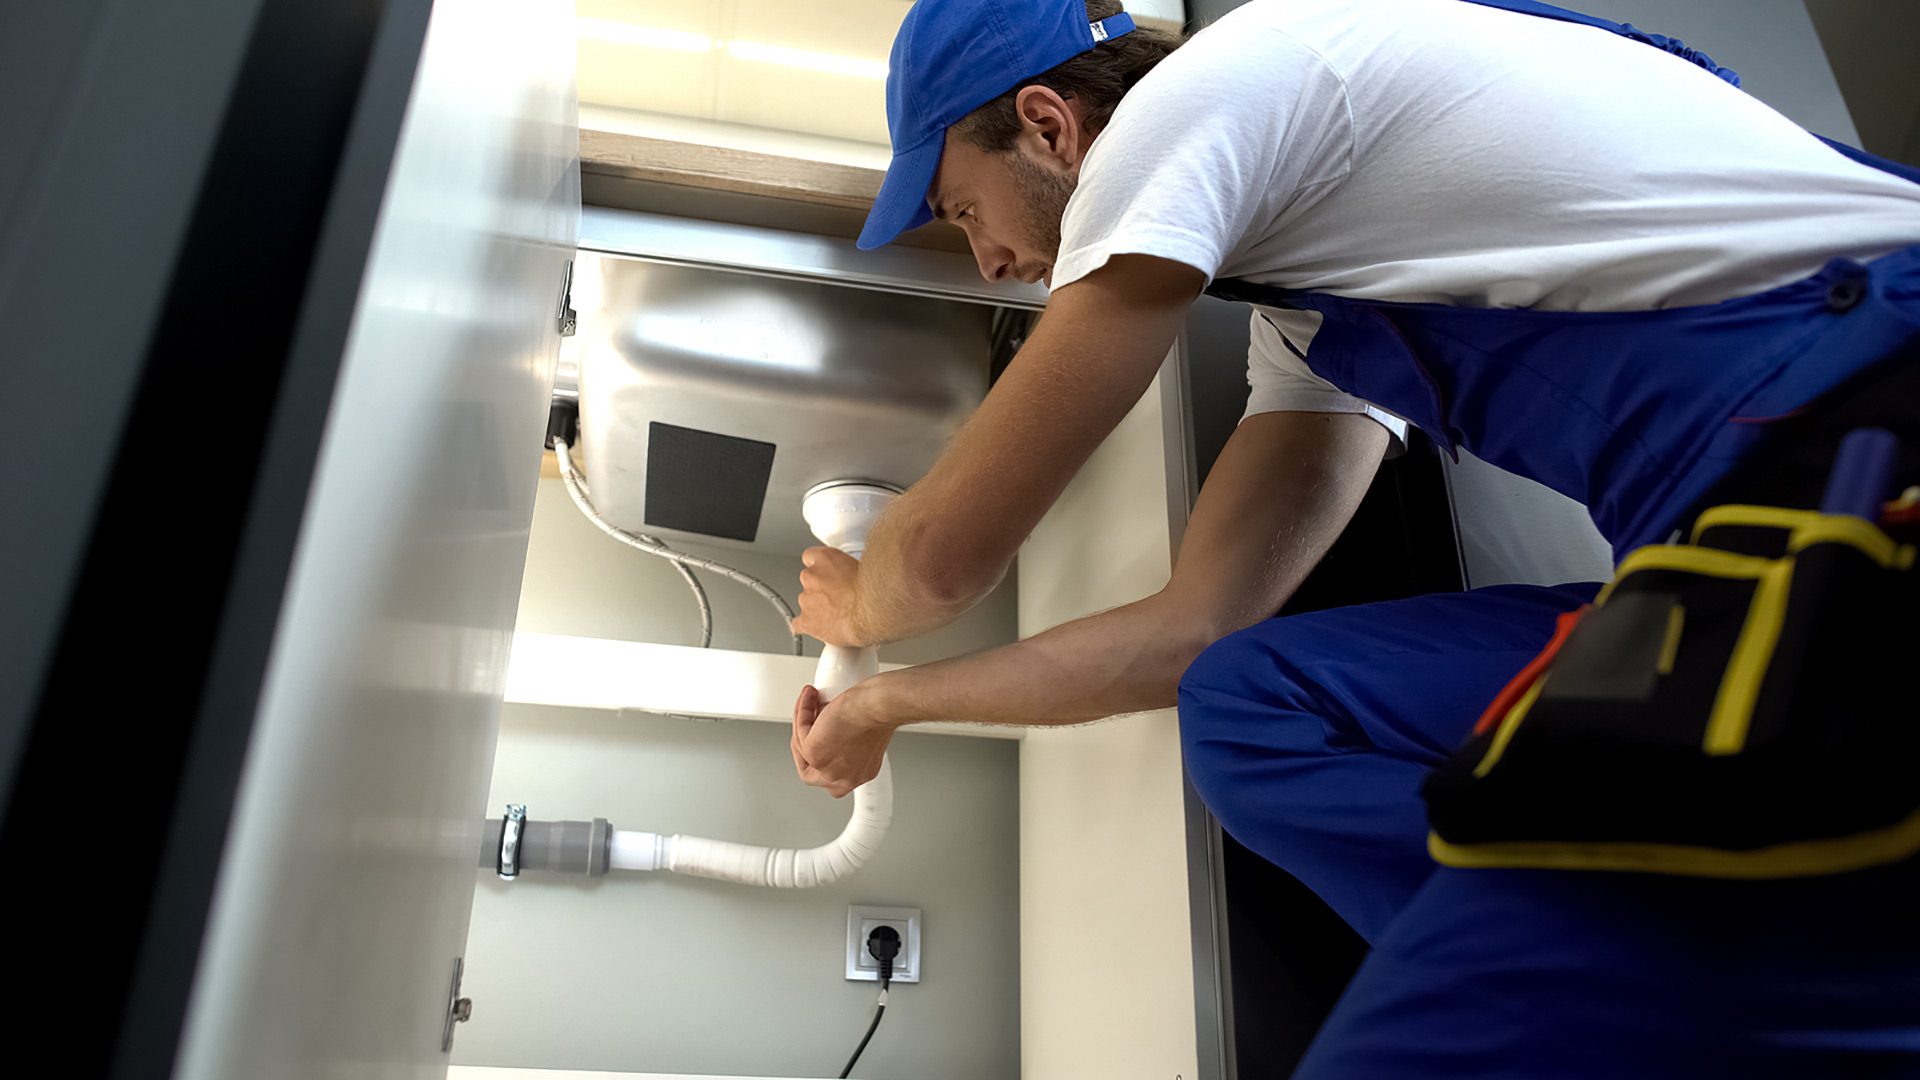 How-Can-Plumbing-Leaks-And-Blows-Clog-My-Pipes.jpg